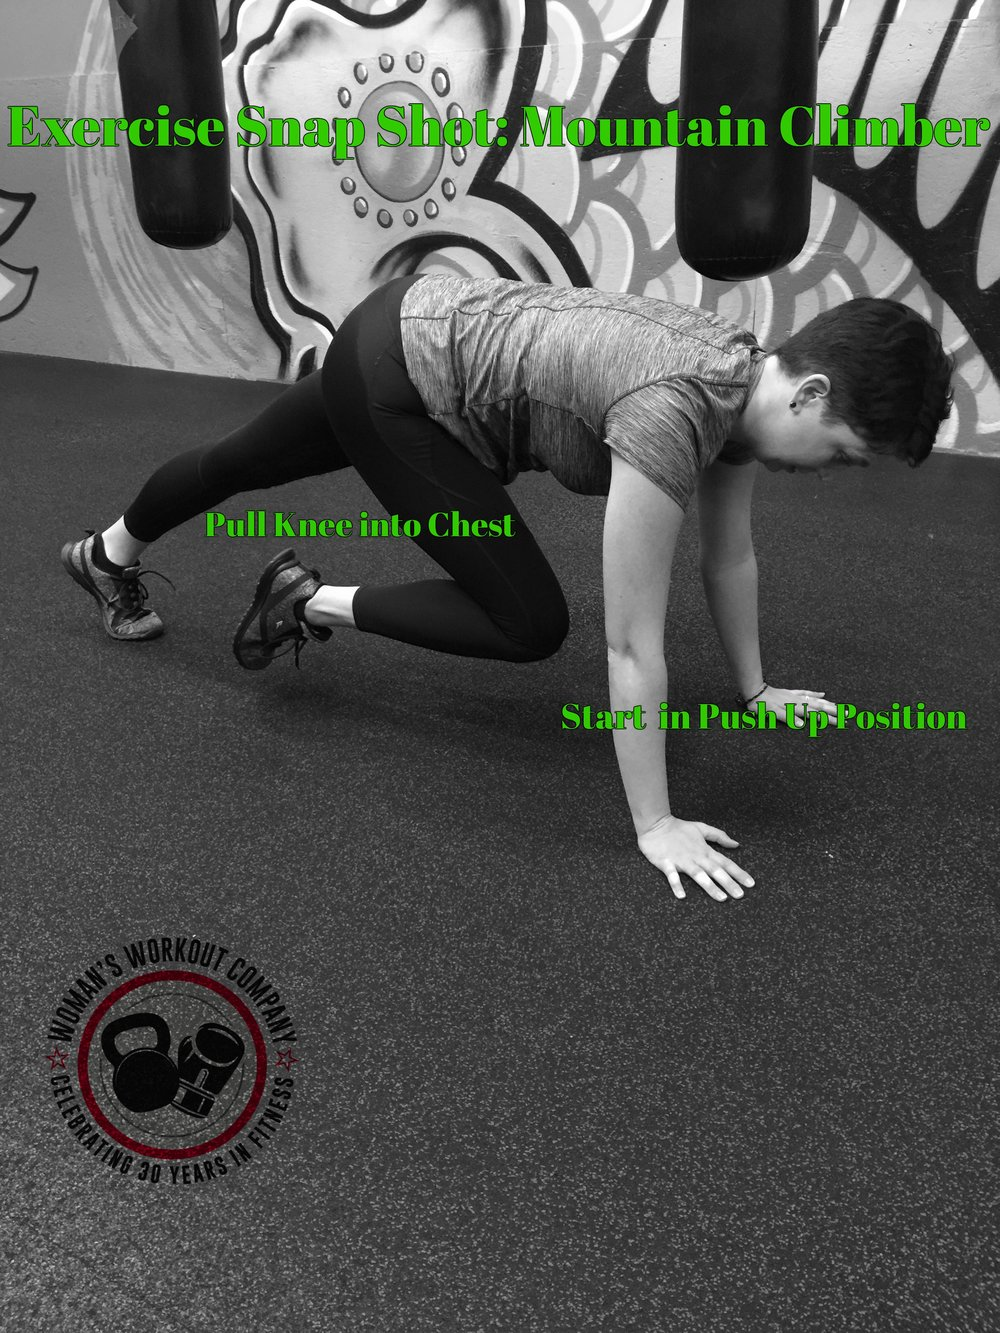 Begin in a pushup position, with your weight supported by your hands and toes. Flexing the knee and hip, bring one leg until the knee is approximately under the hip. This will be your starting position. Explosively reverse the positions of your legs, extending the bent leg until the leg is straight and supported by the toe, and bringing the other foot up with the hip and knee flexed. Repeat in an alternating fashion for 20-30 seconds.